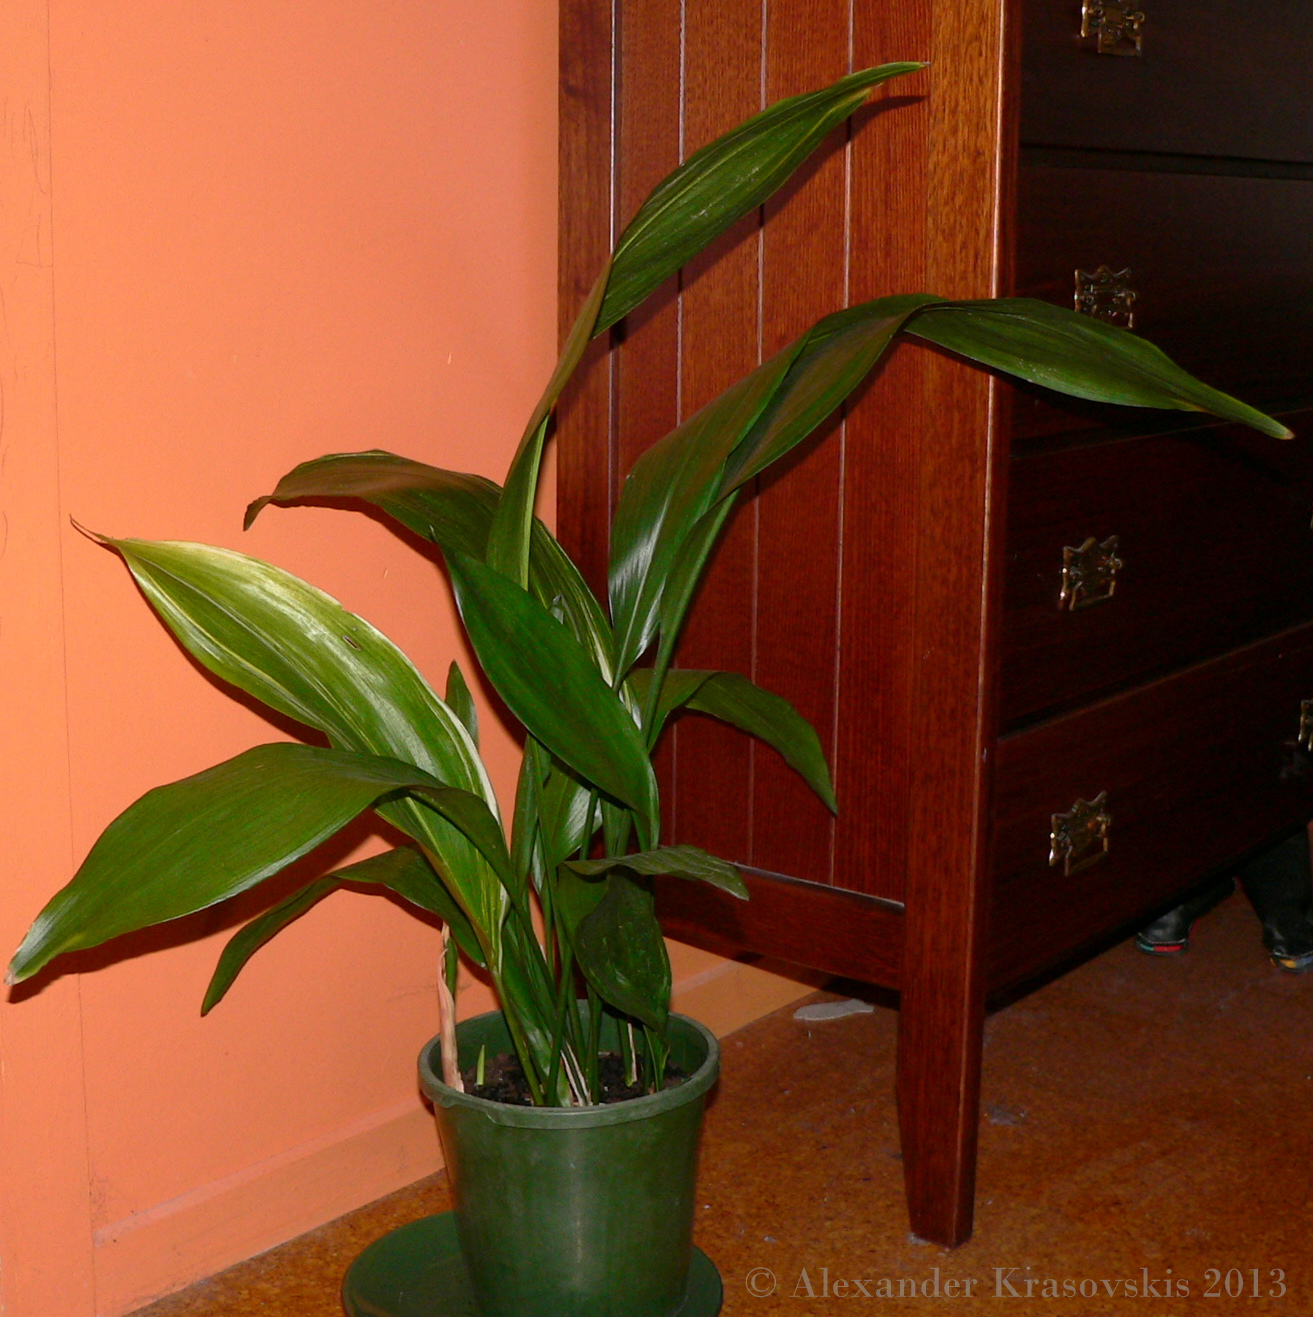 Aggregata plants gardens classic common house plant aspidistra aka cast iron plant - Low light indoor house plants ...